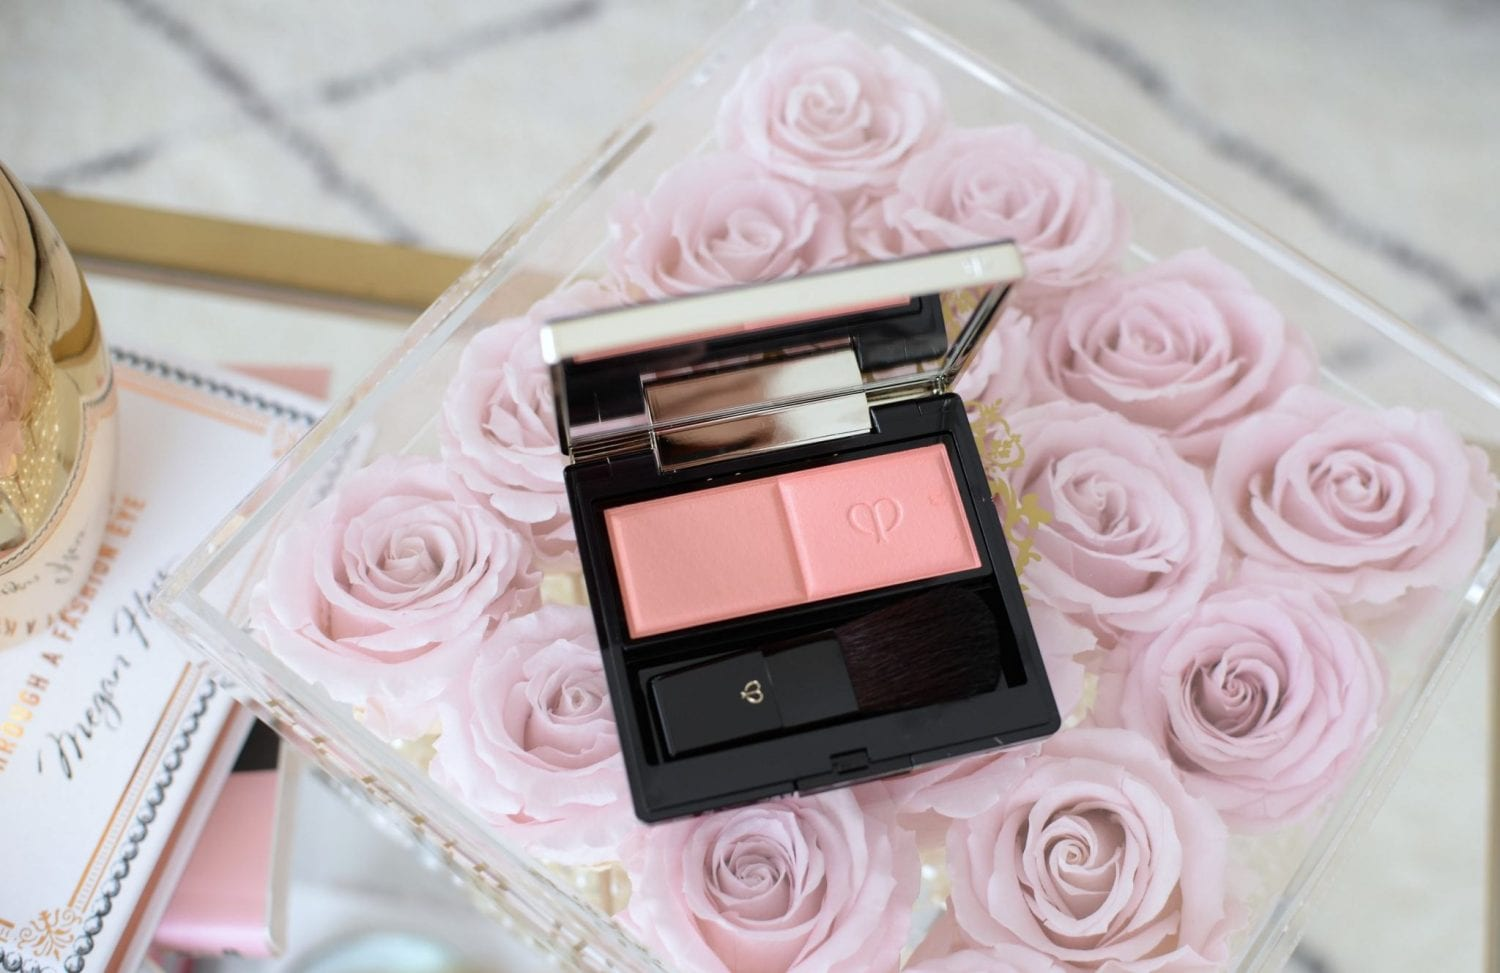 Soft Romantic Pink Makeup Look featuring Cle de Peau (19)